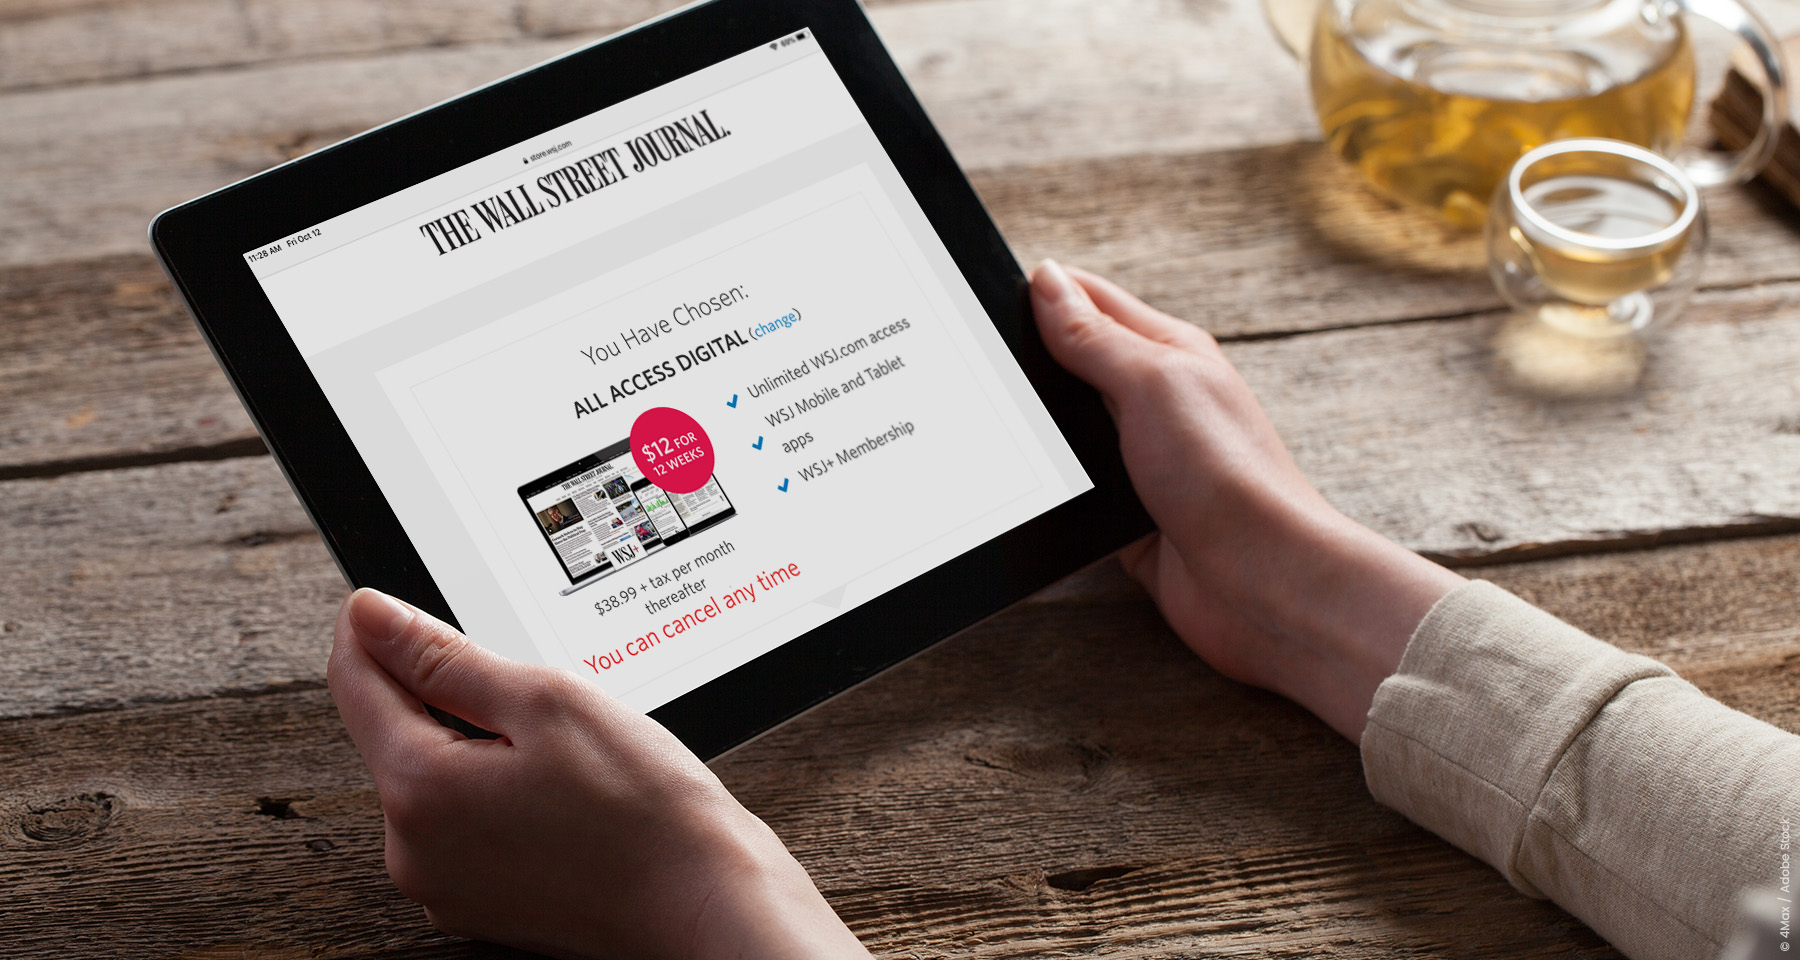 Wall Street Journal searches for low-hanging fruit of reader subscriptions